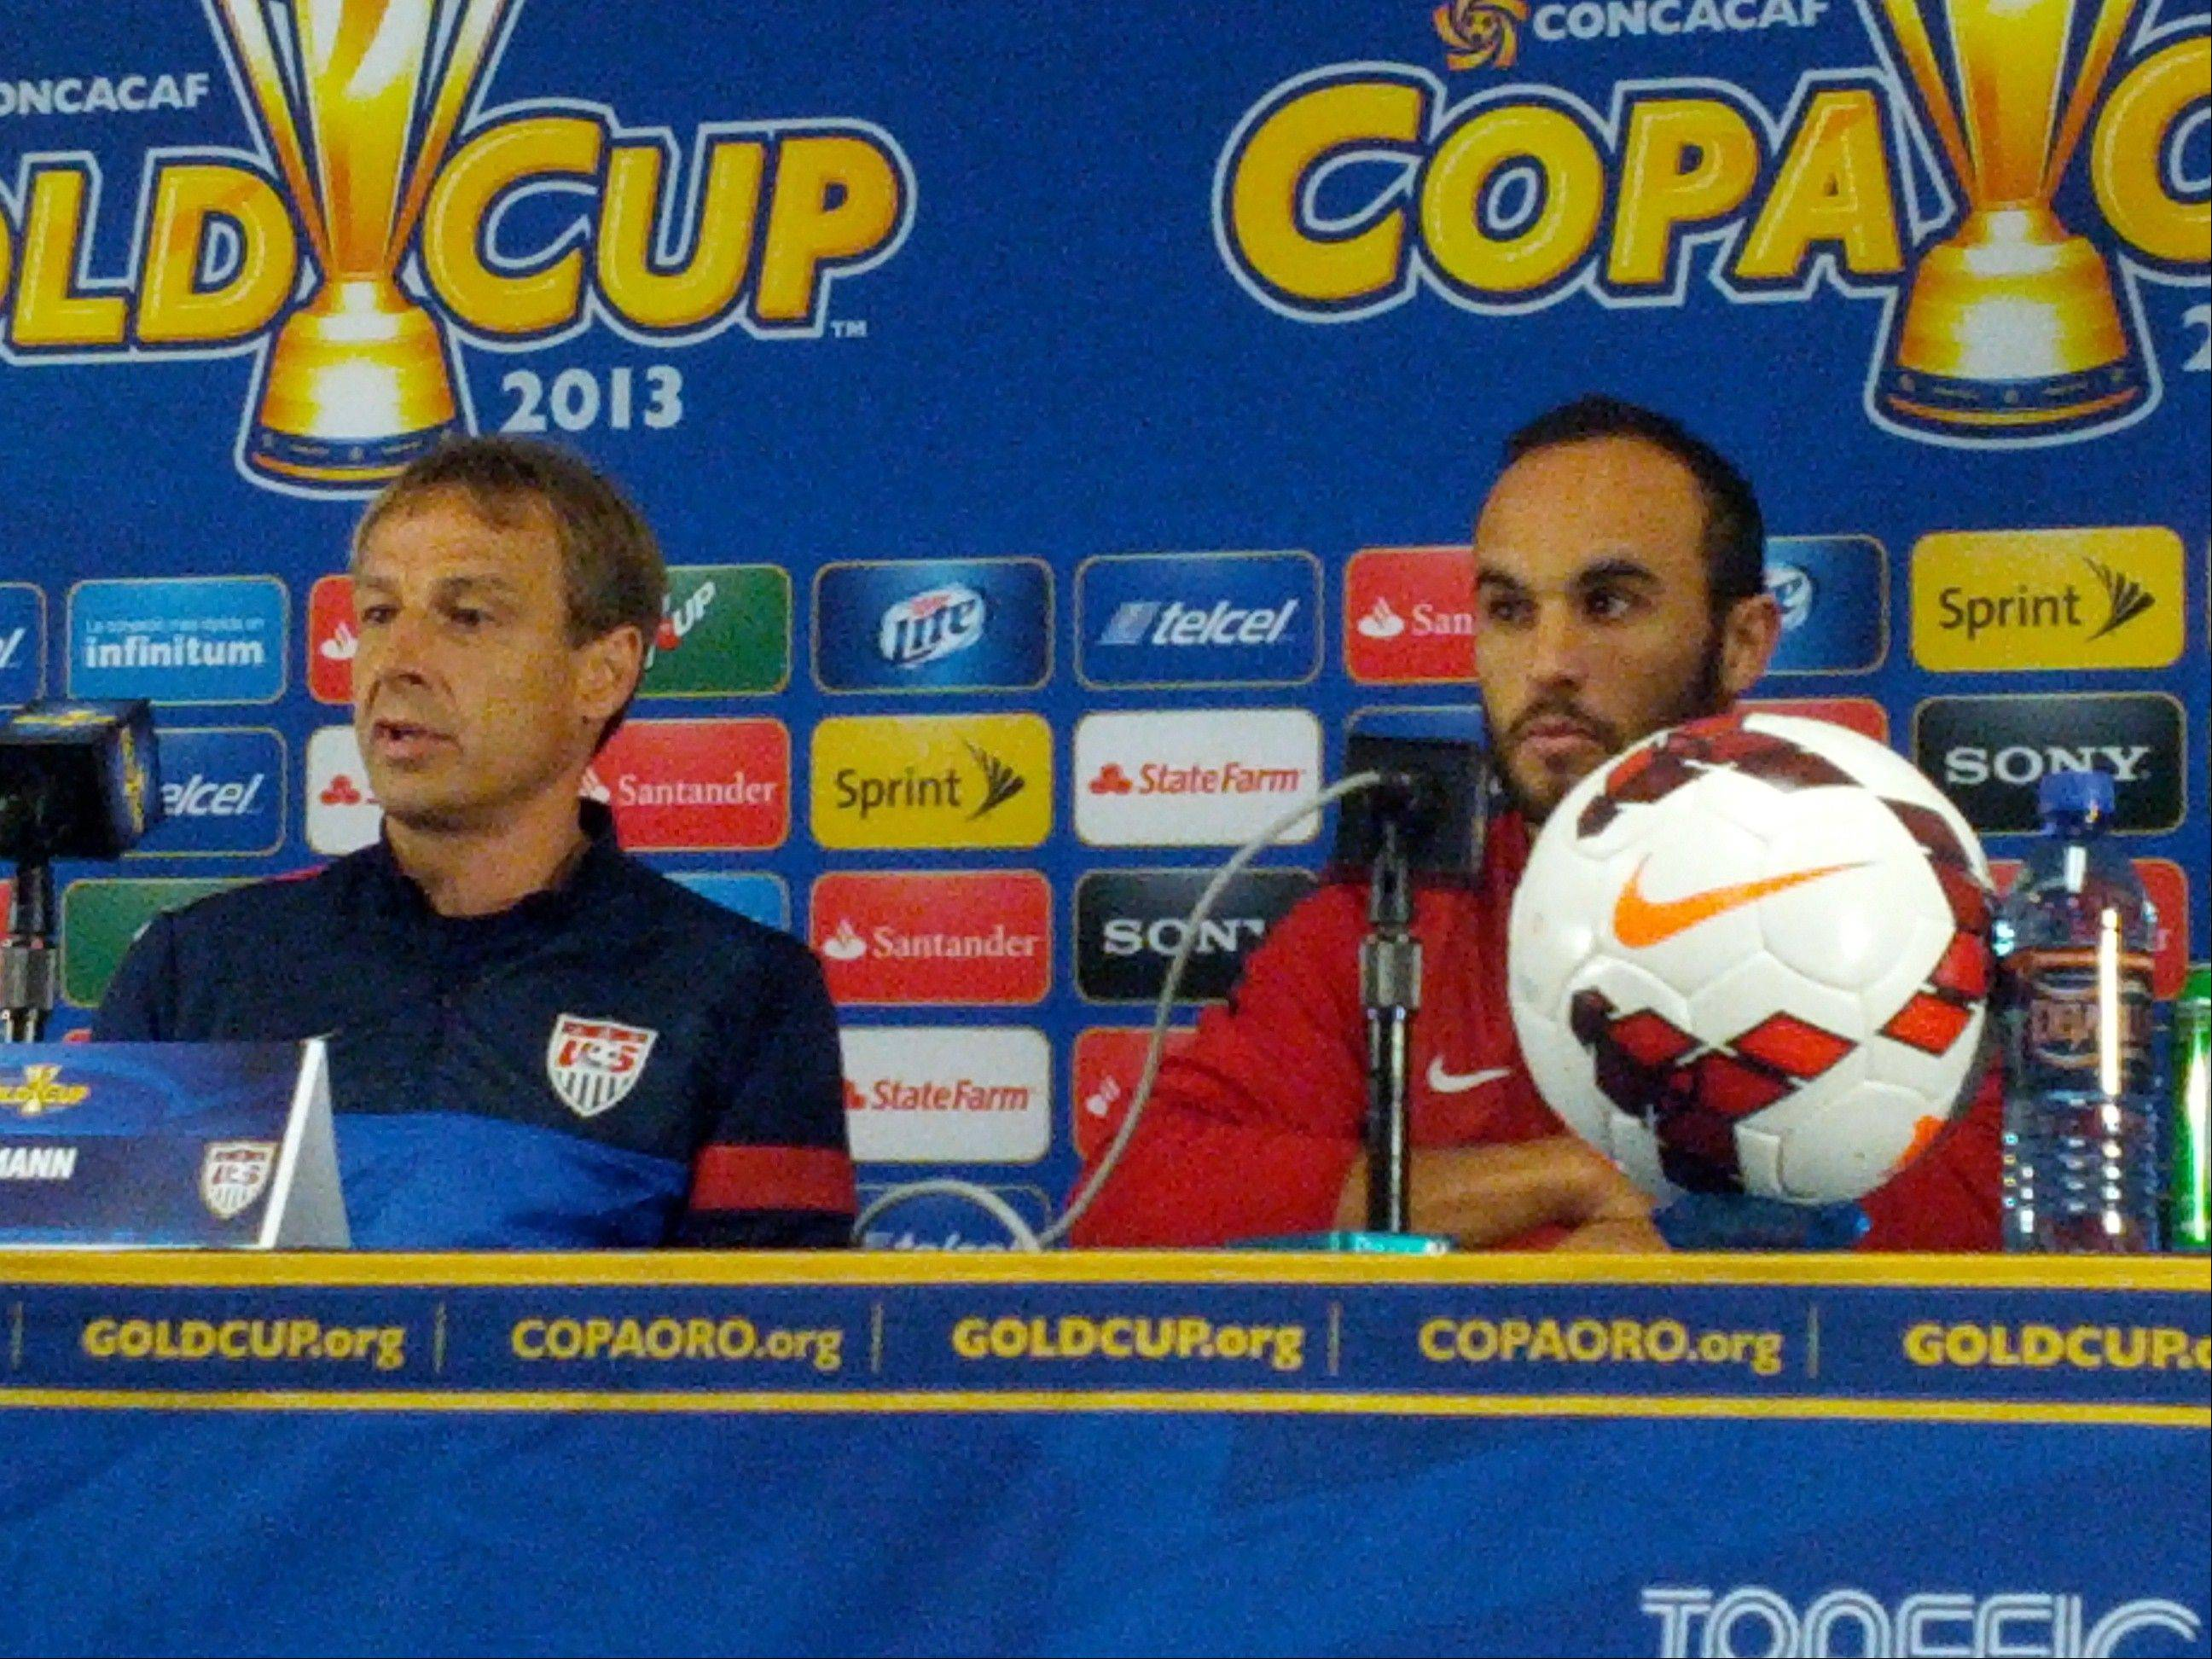 U.S. men�s national team coach Jurgen Klinsmann, left, and forward/midfielder Landon Donovan meet the media Saturday afternoon at Soldier Field ahead of Sunday�s Gold Cup final in Chicago.